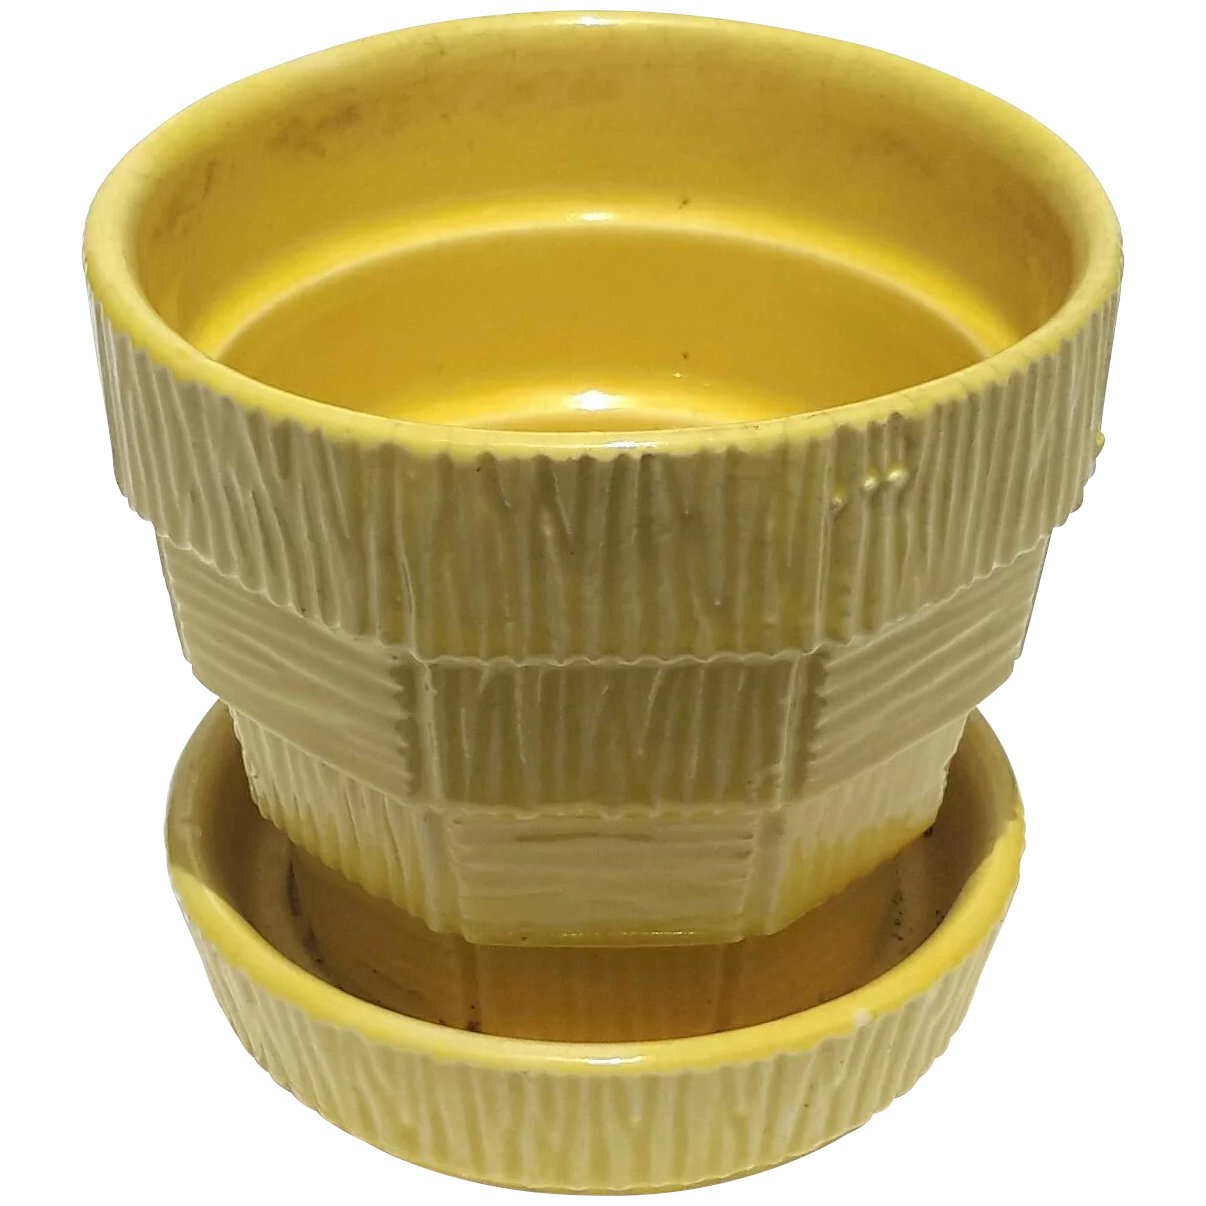 Vintage Signed McCoy Pottery Yellow Flower Pot : Stephen A